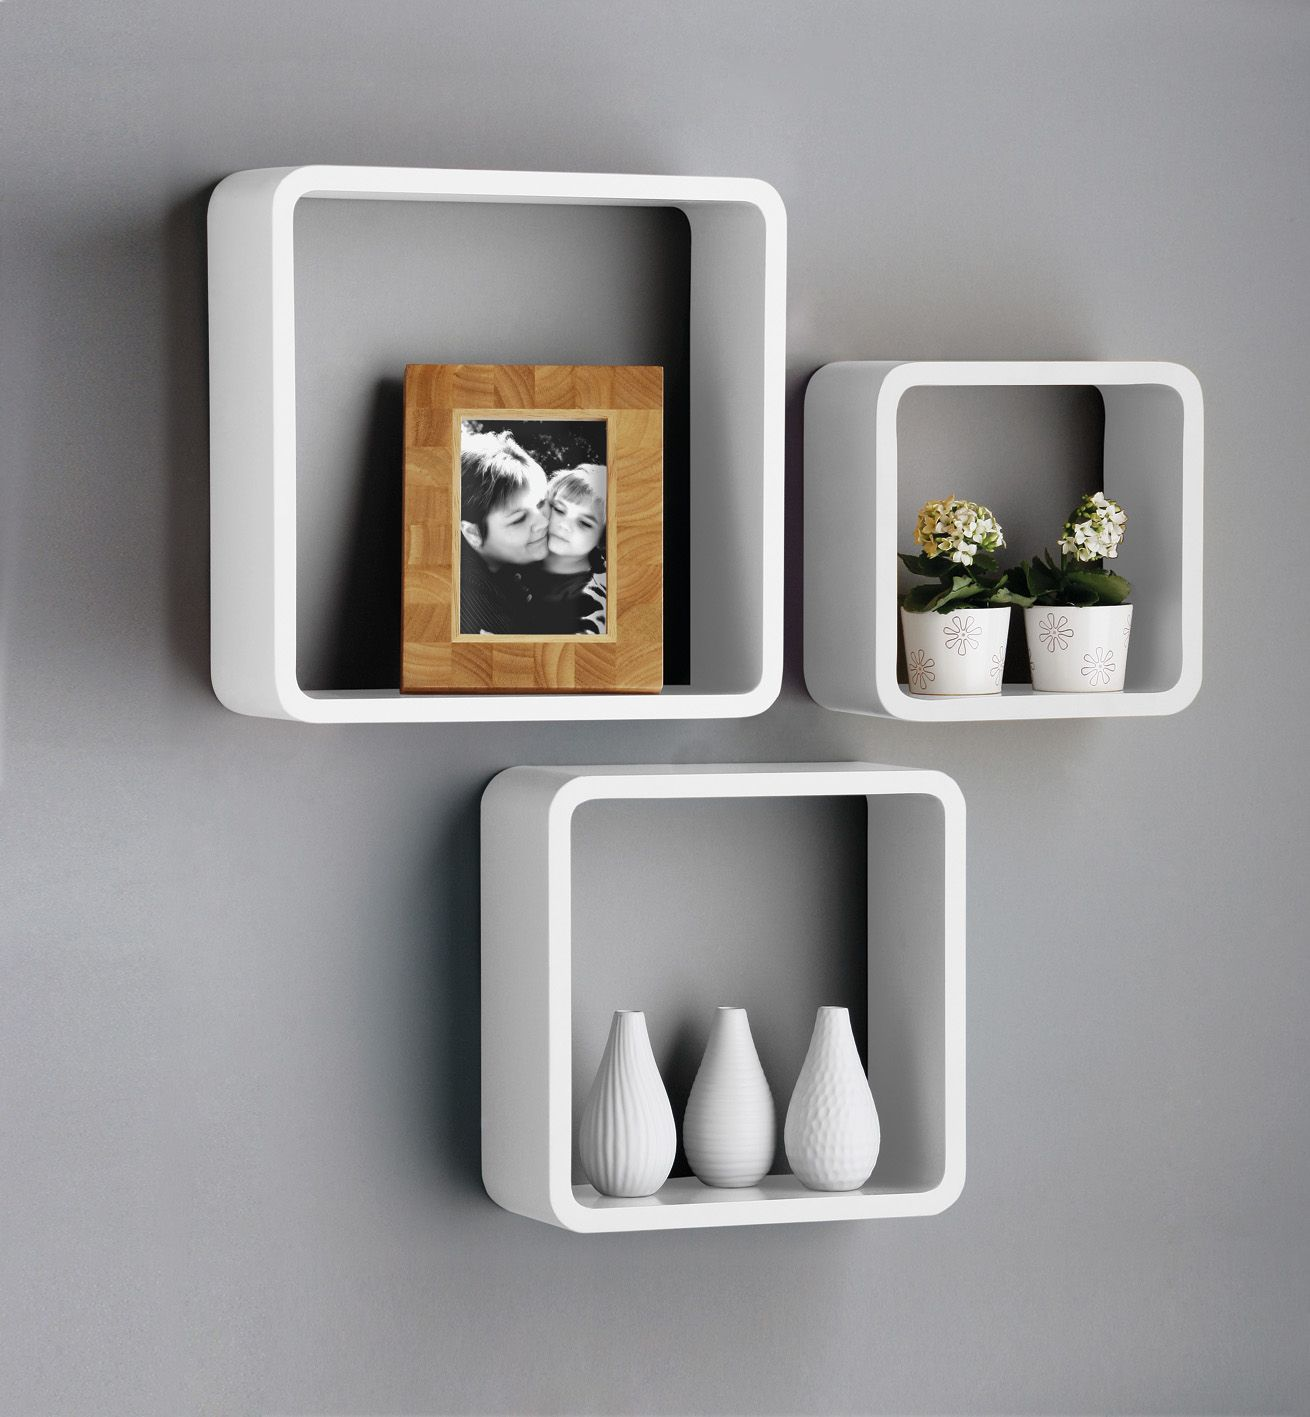 details about new set white black square floating cube wall shelf storage shelves cubes distance between two tiny glass temporary bathroom wood burner with oak mantle heavy duty